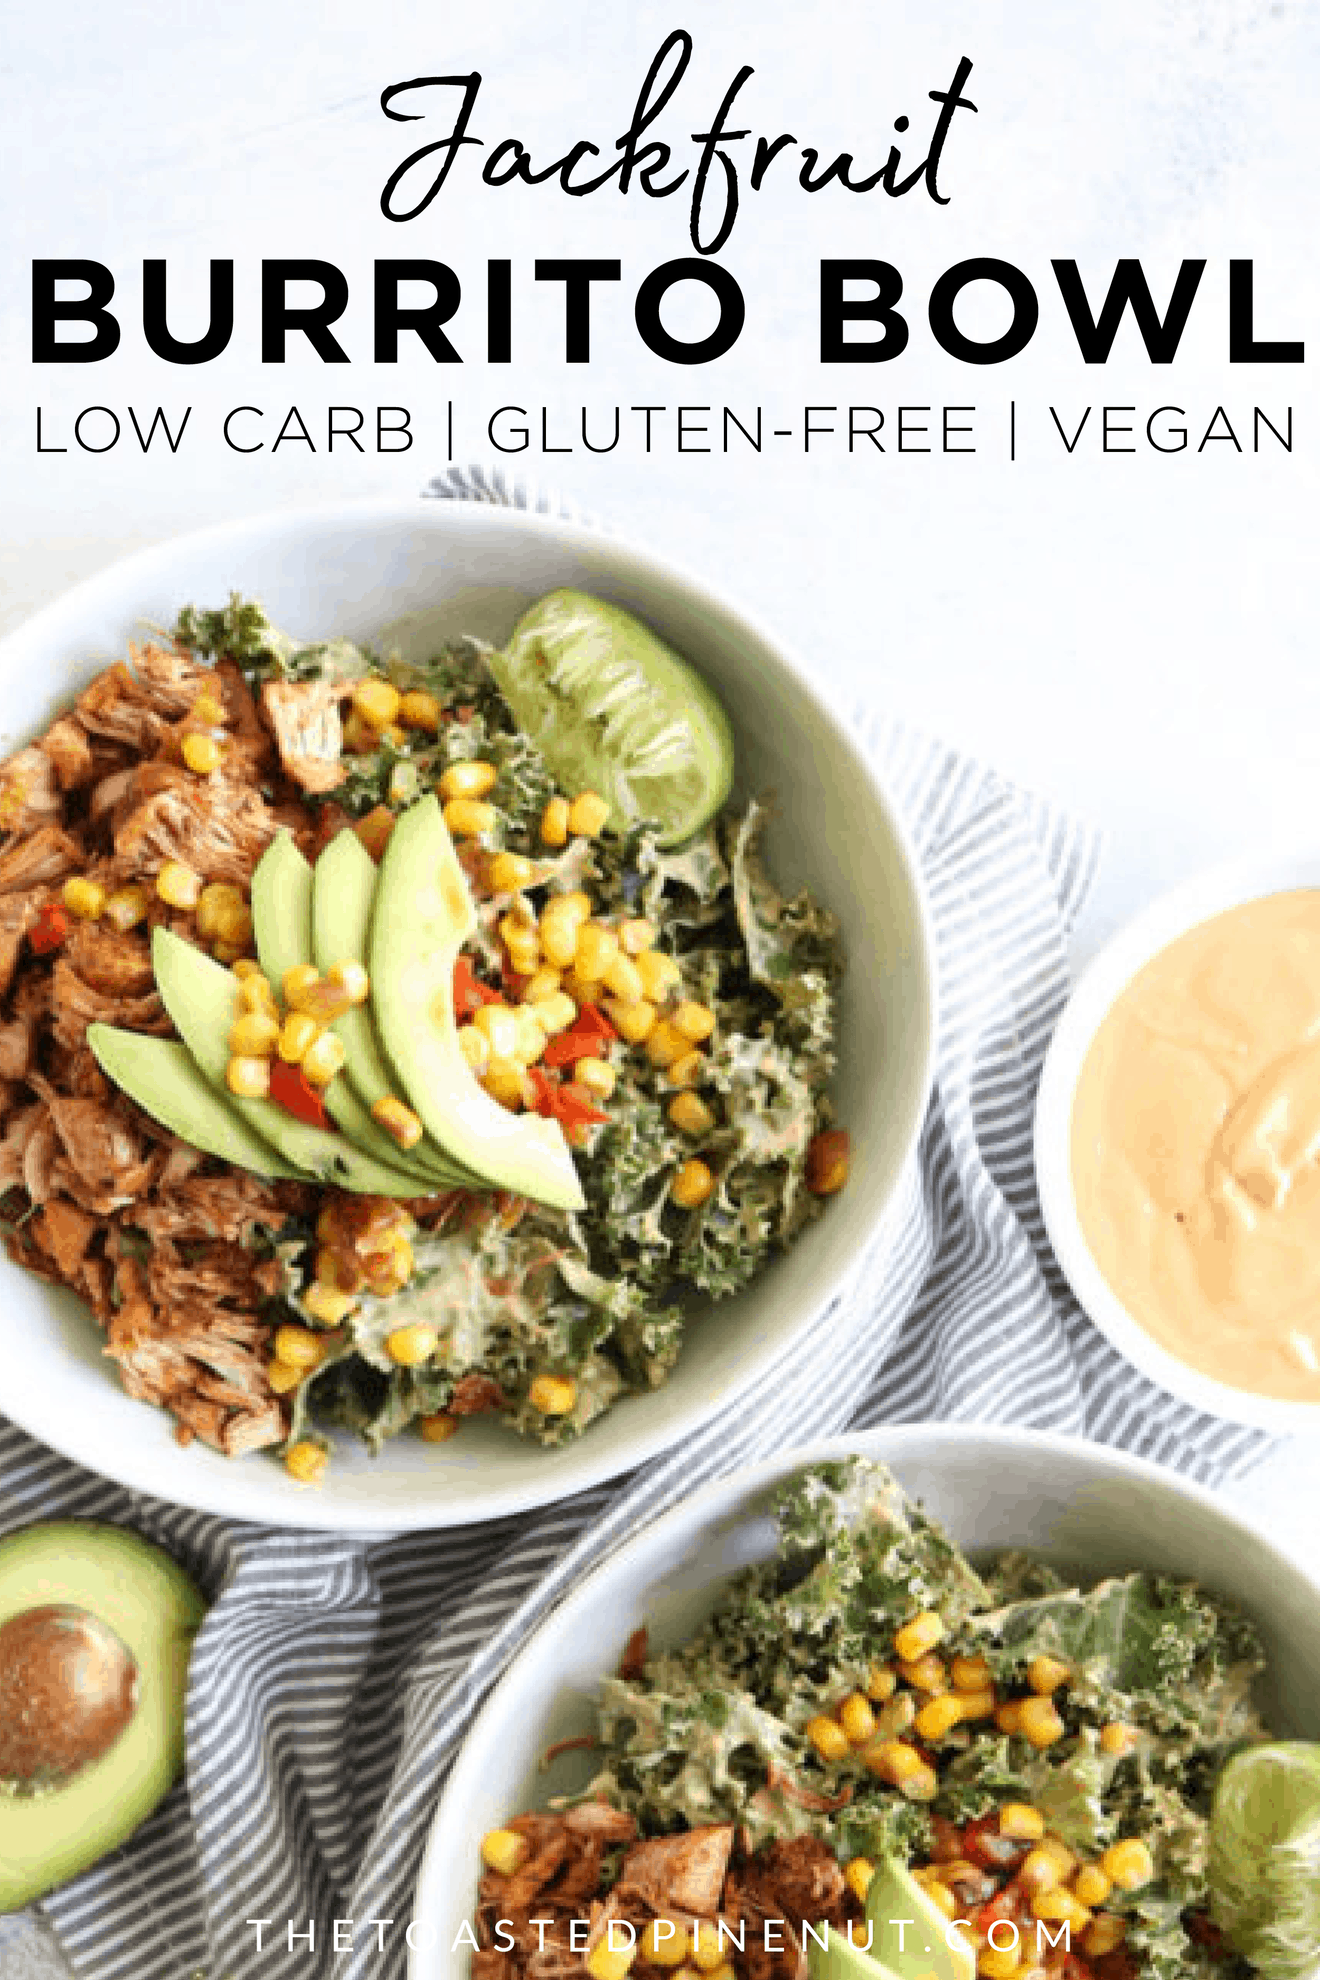 Lighten up #tacotuesday with this low carb, gluten free, and vegan jackfruit burrito bowl that will quickly become your new favorite weeknight meal. thetoastedpinenut.com #thetoastedpinenut #lowcarb #glutenfree #jackfruit #burrito #vegan #weeknightmeal #vegandinner #kale #kalesalad